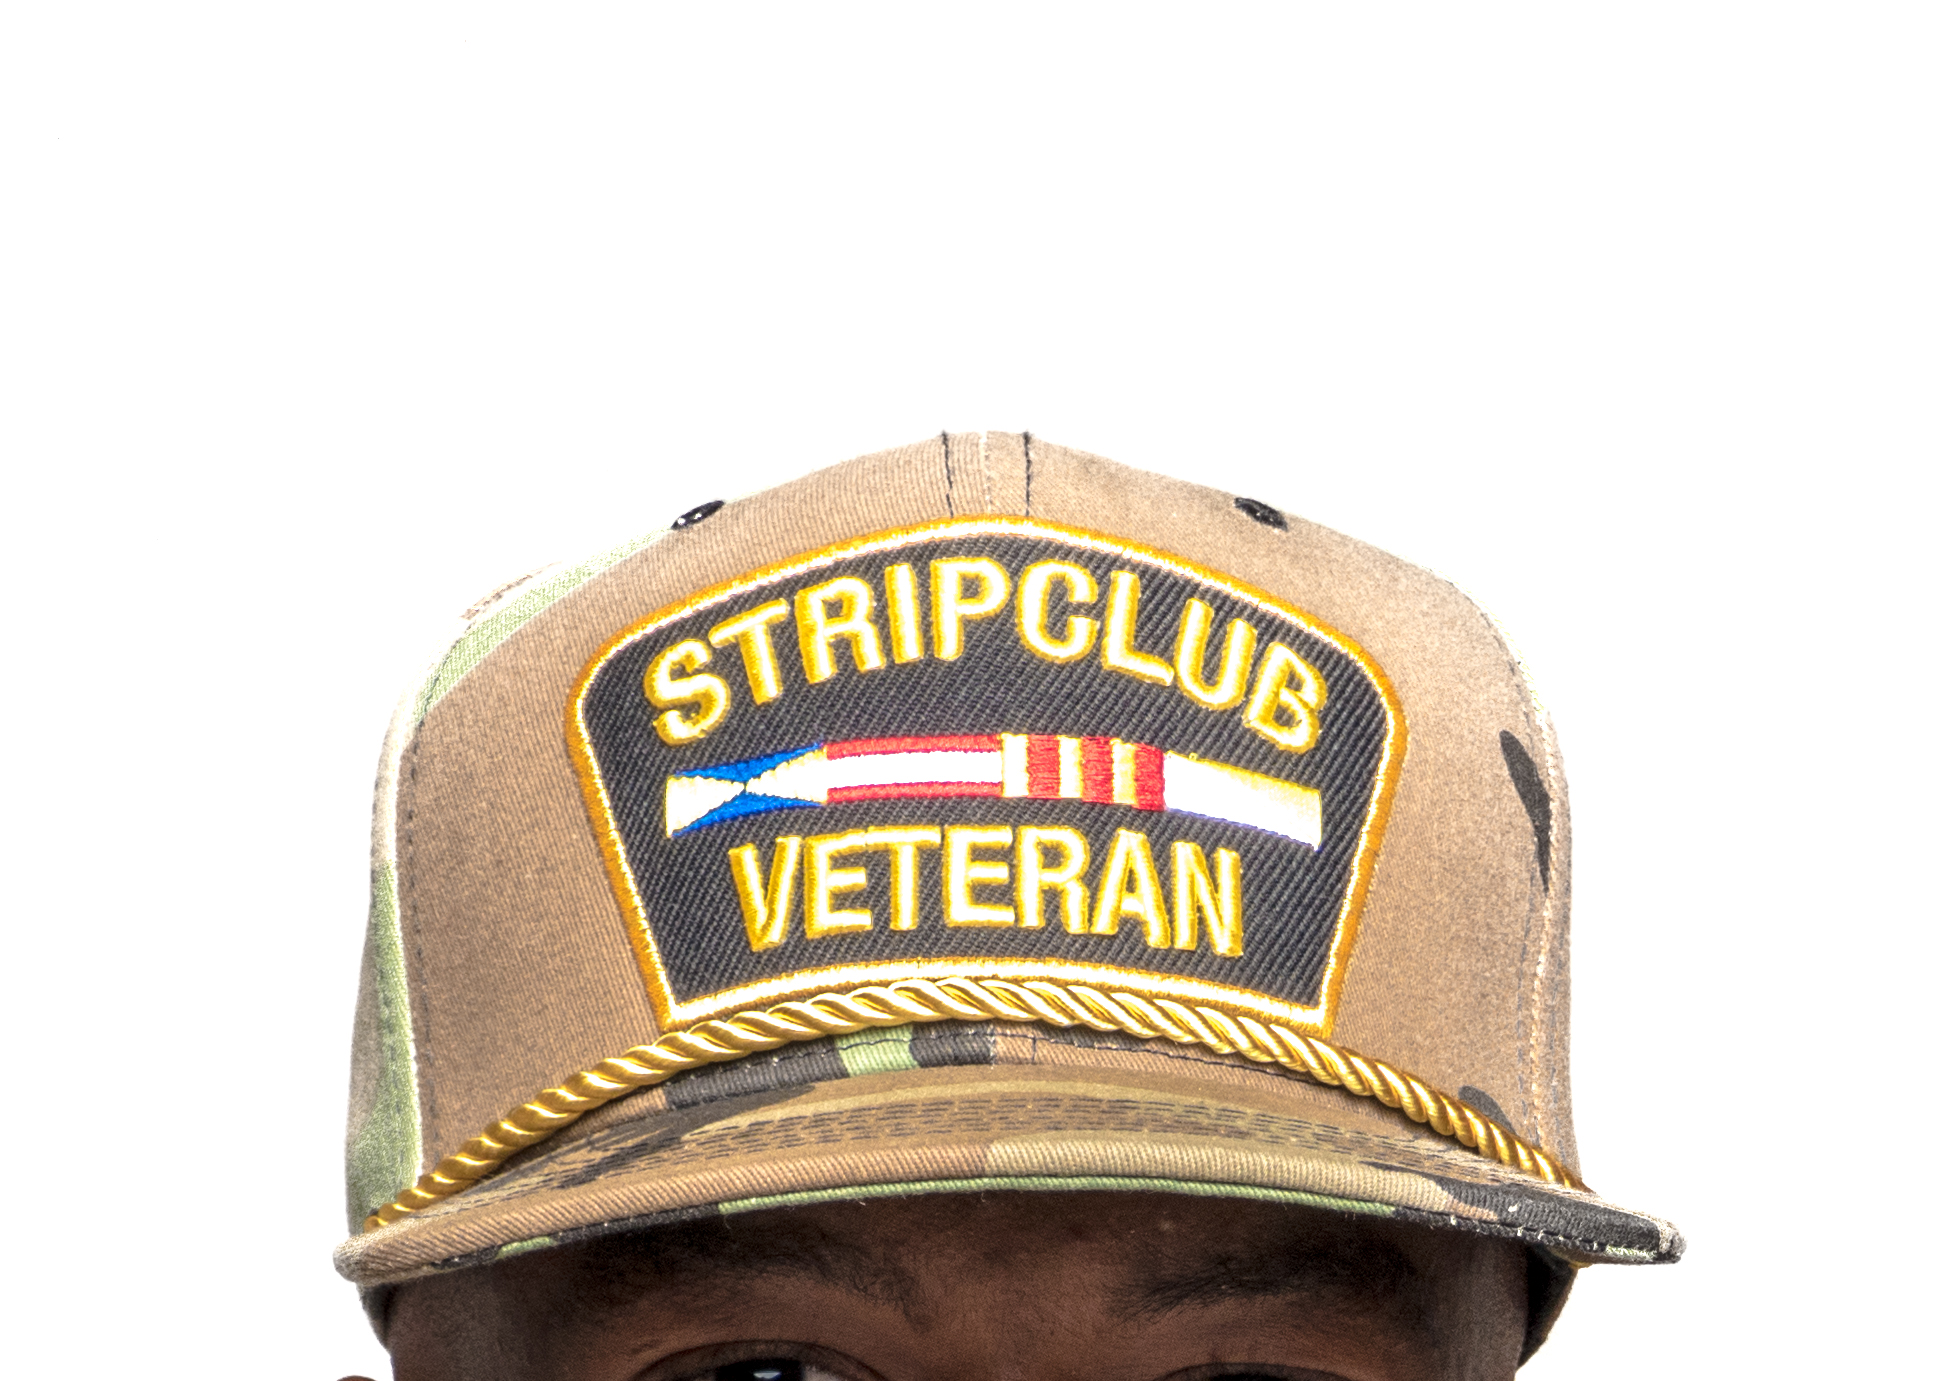 strip club vets male models-1560148-3.jpg